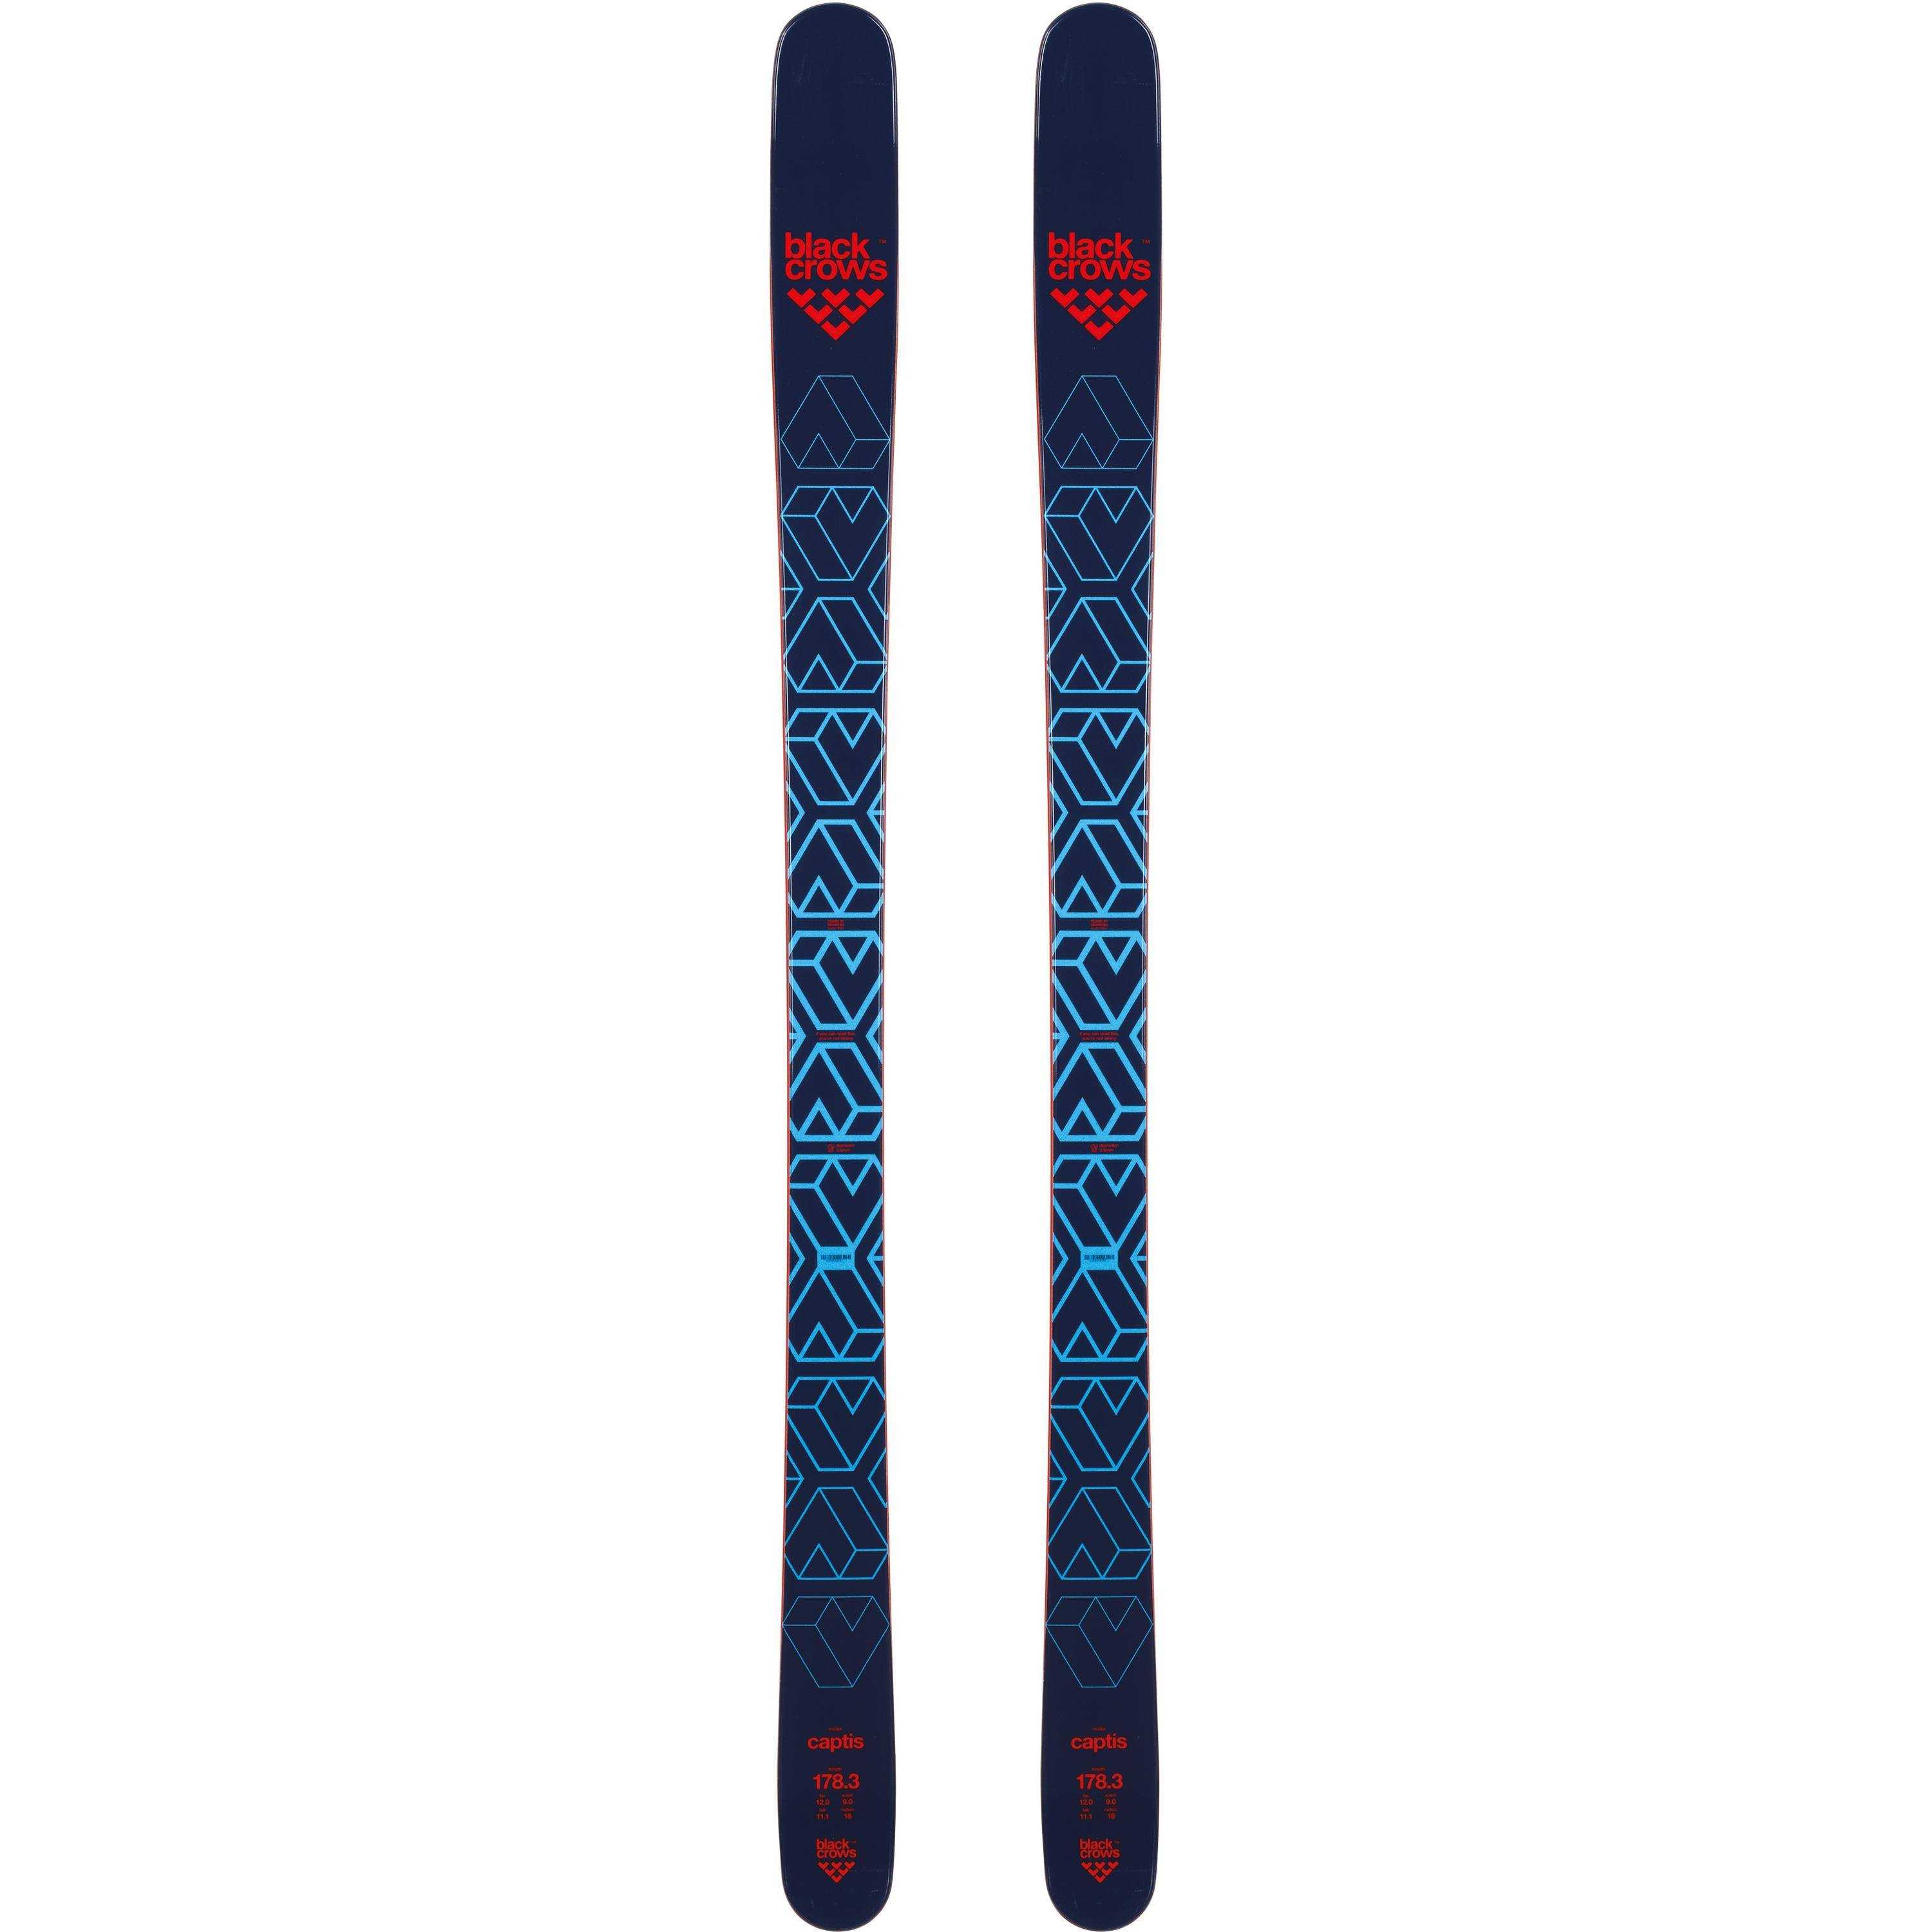 Black Crows Captis Freeride Ski Freeride Ski 171 Normal